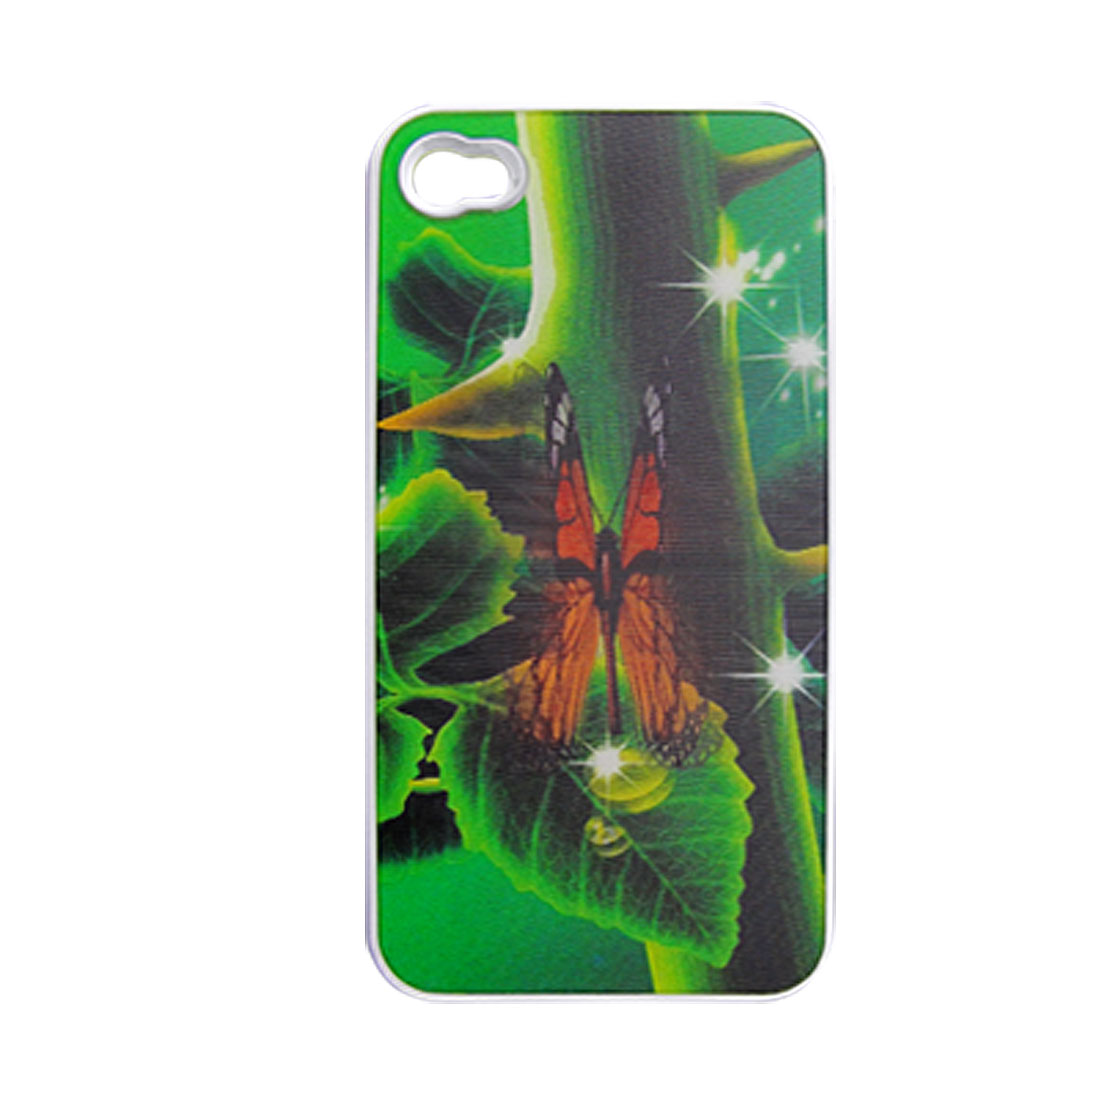 3D Butterfly Hard Plastic Back Case Cover for iPhone 4 4G